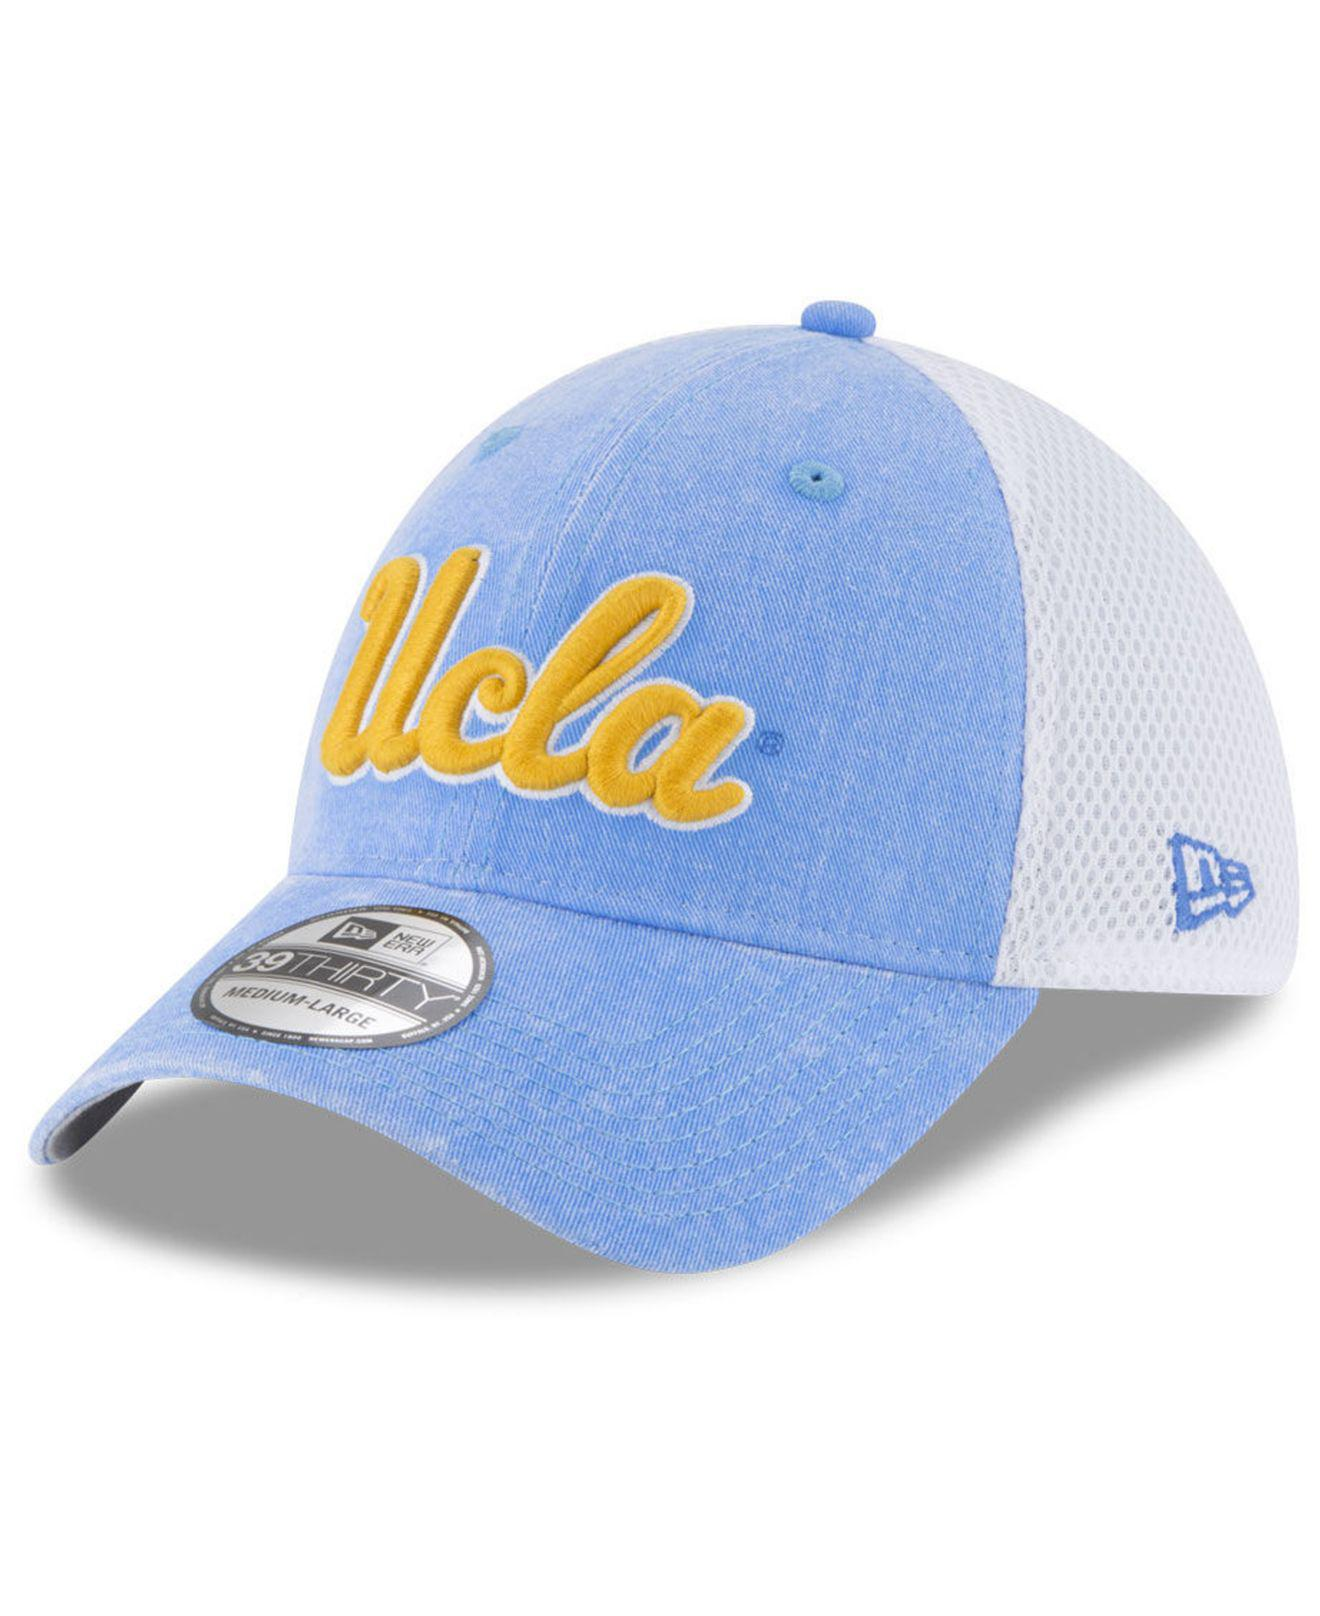 39404f51f8a Lyst - Ktz Ucla Bruins Washed Neo 39thirty Cap in Blue for Men